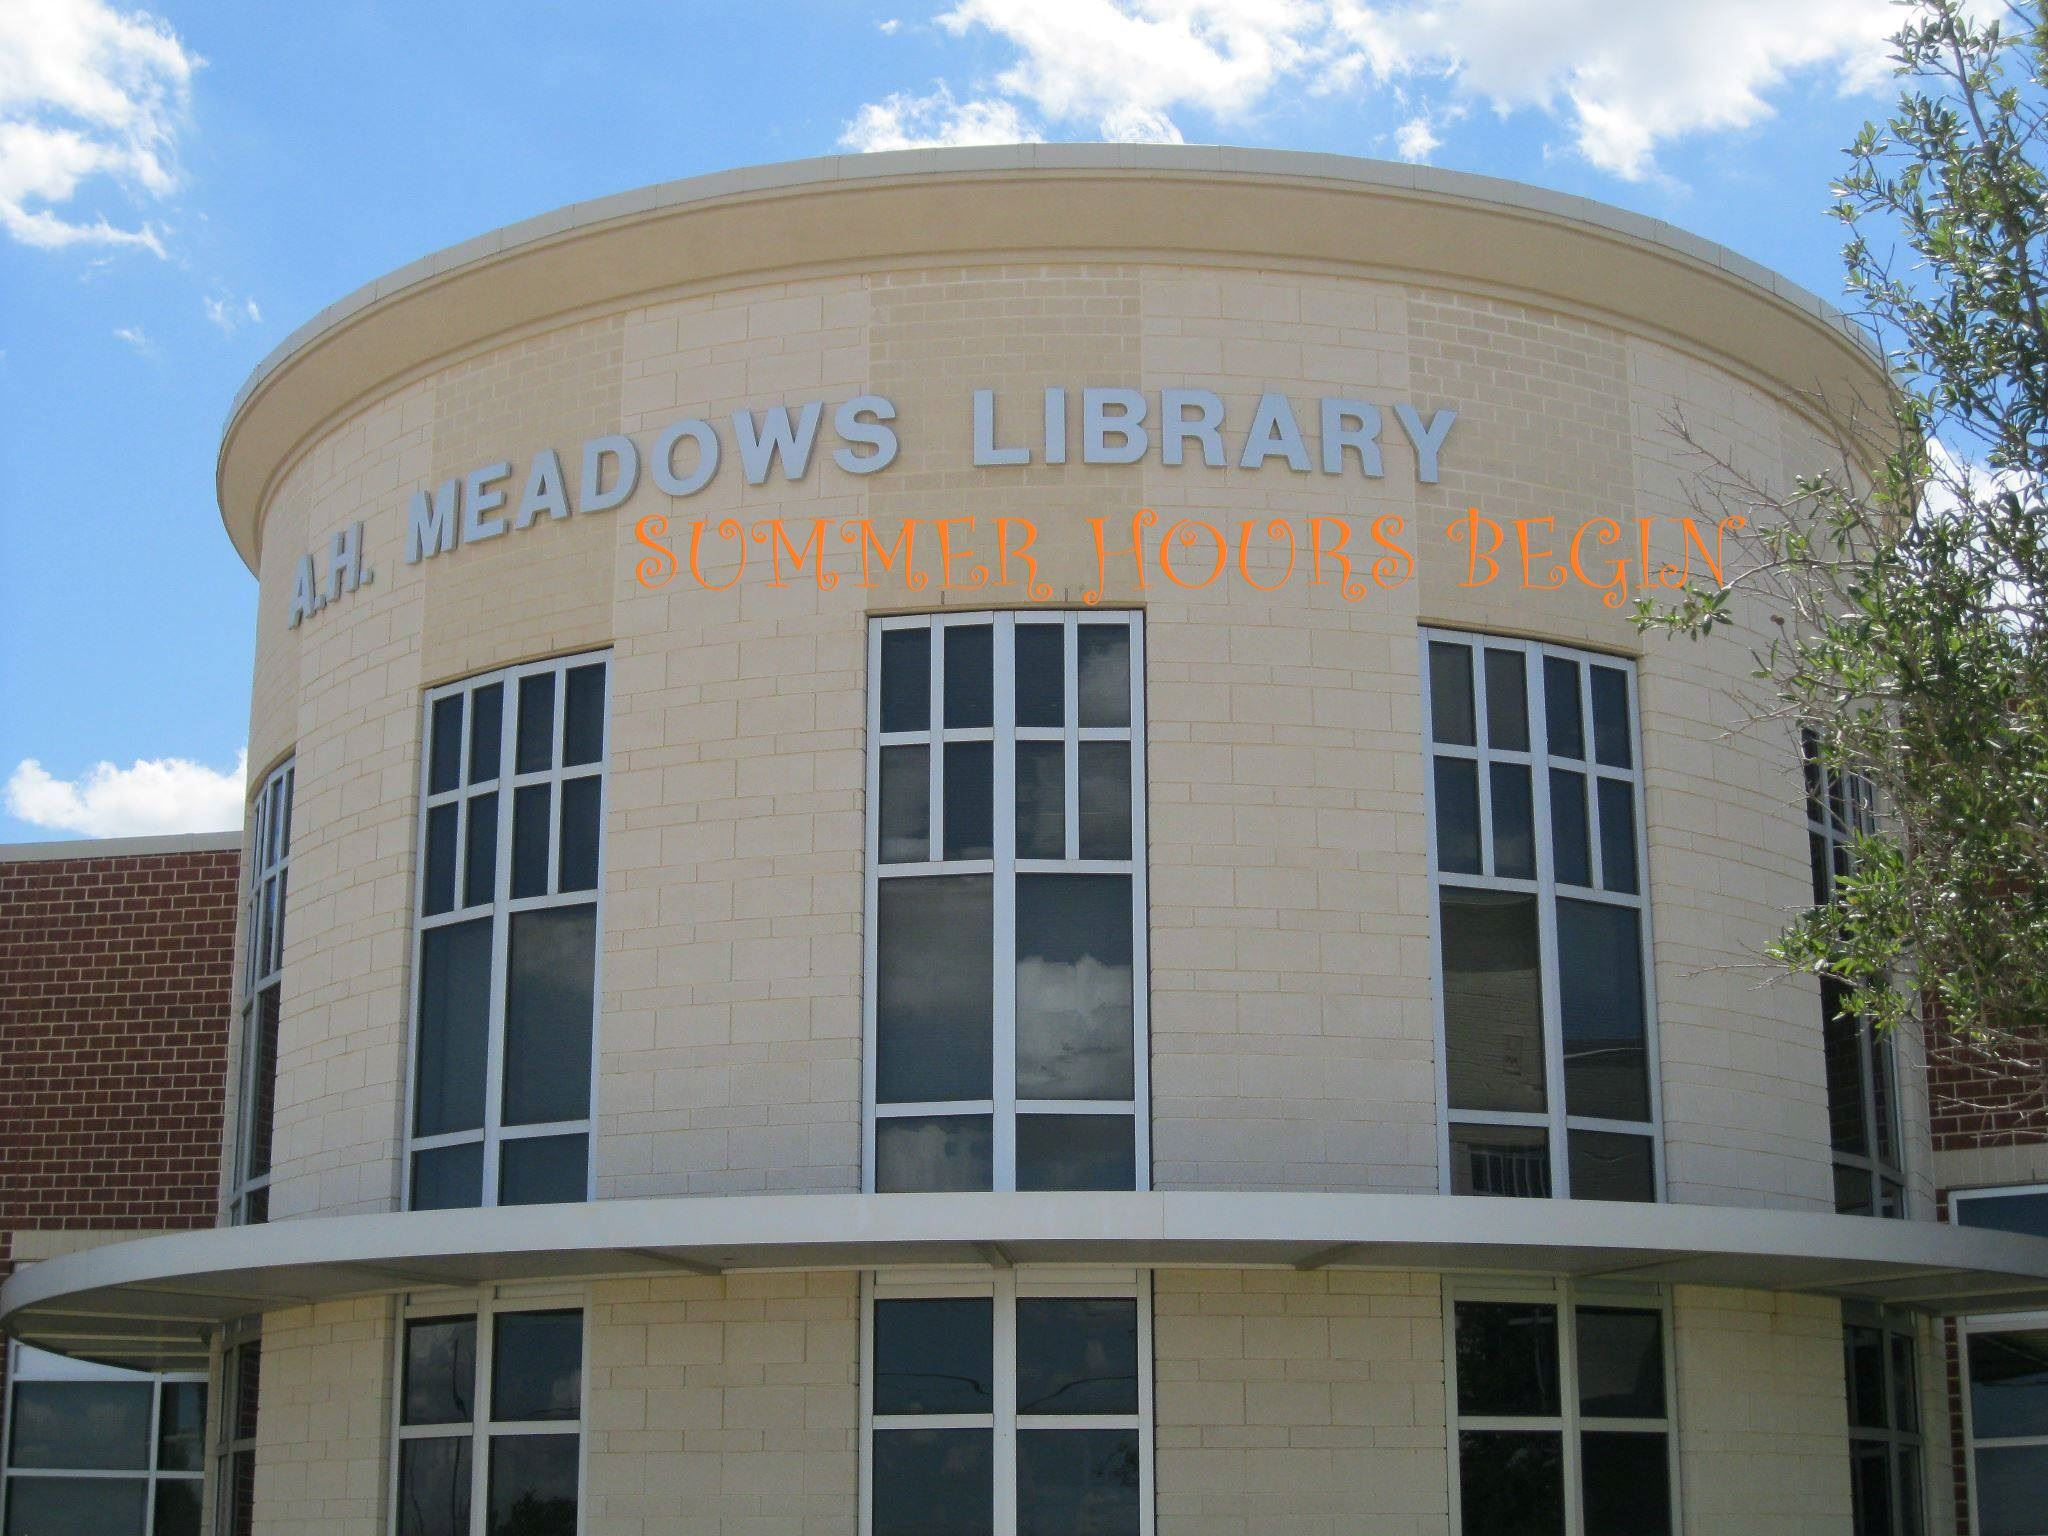 Meadows SUMMER HOURS